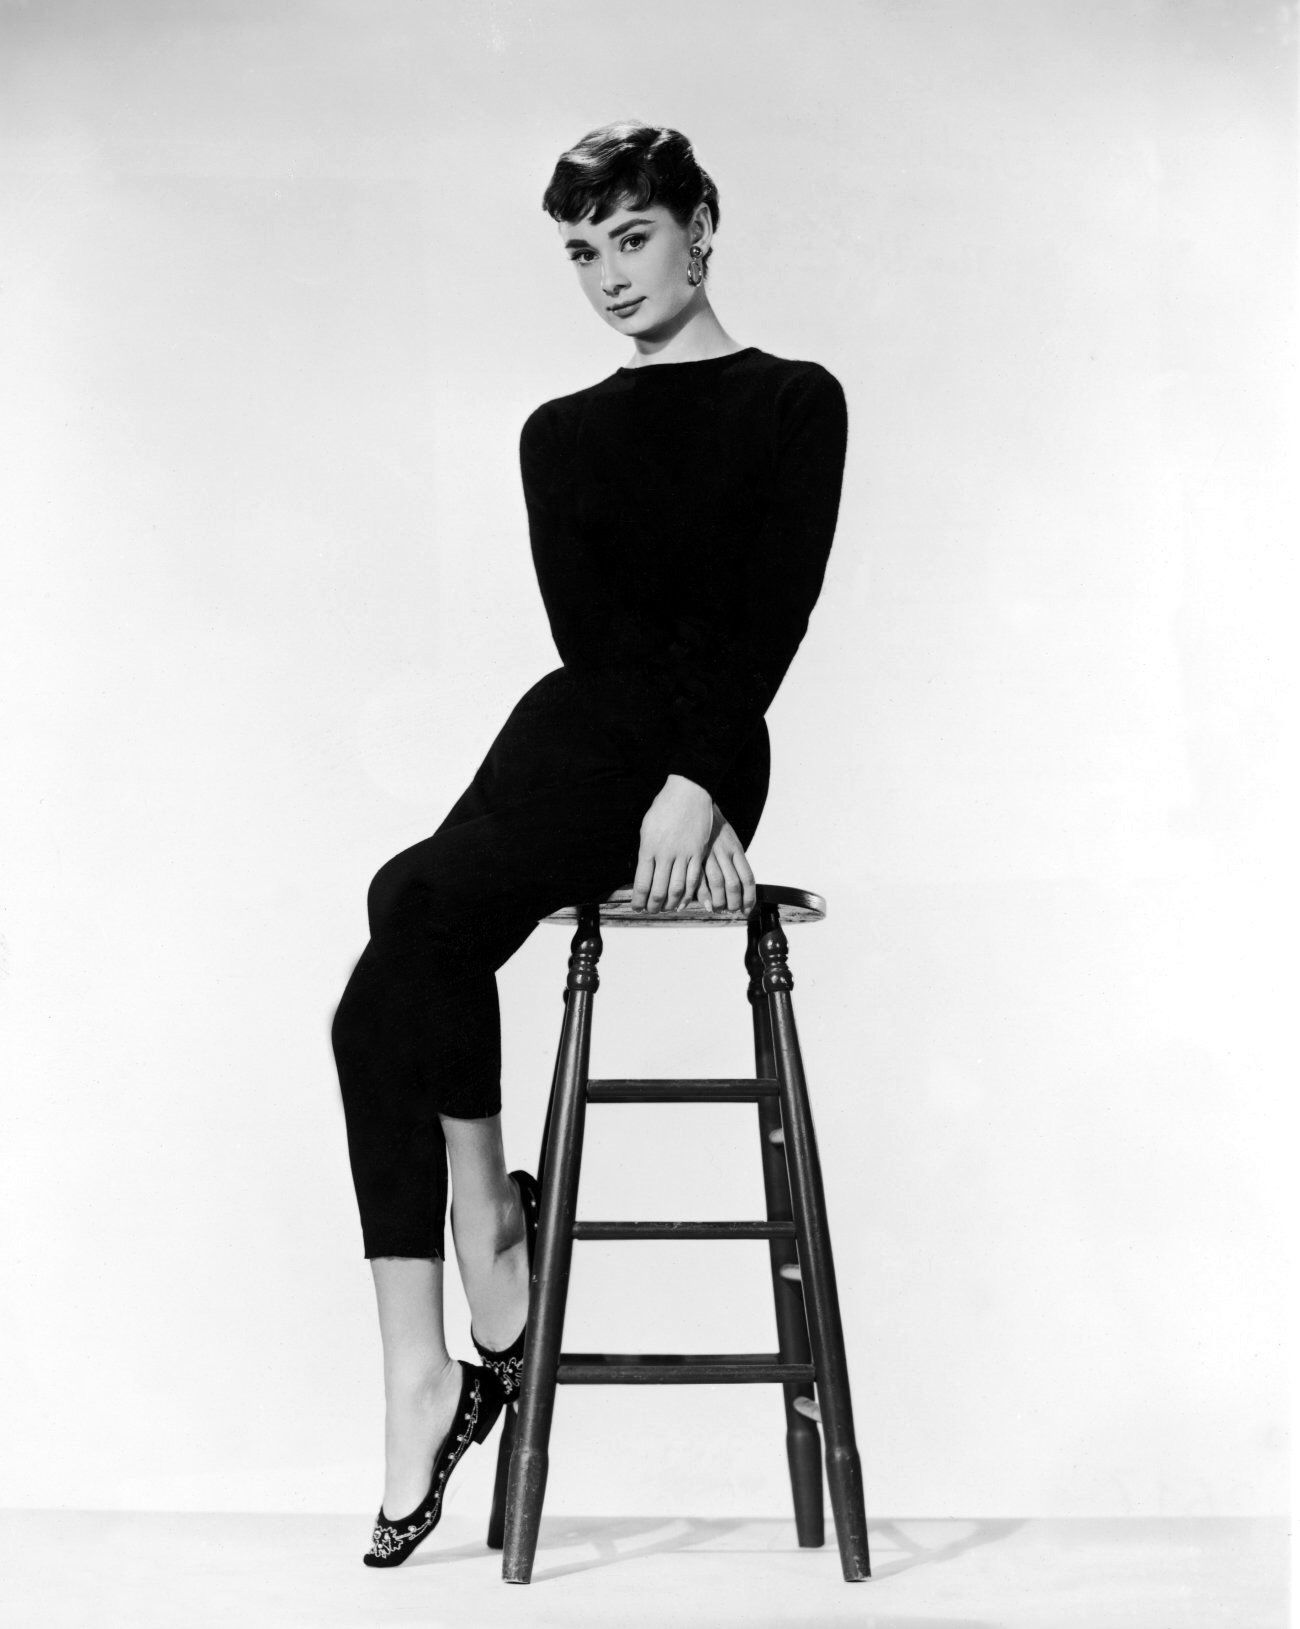 Audrey Hepburn Photoshoot For Her Film Funny Face 1957